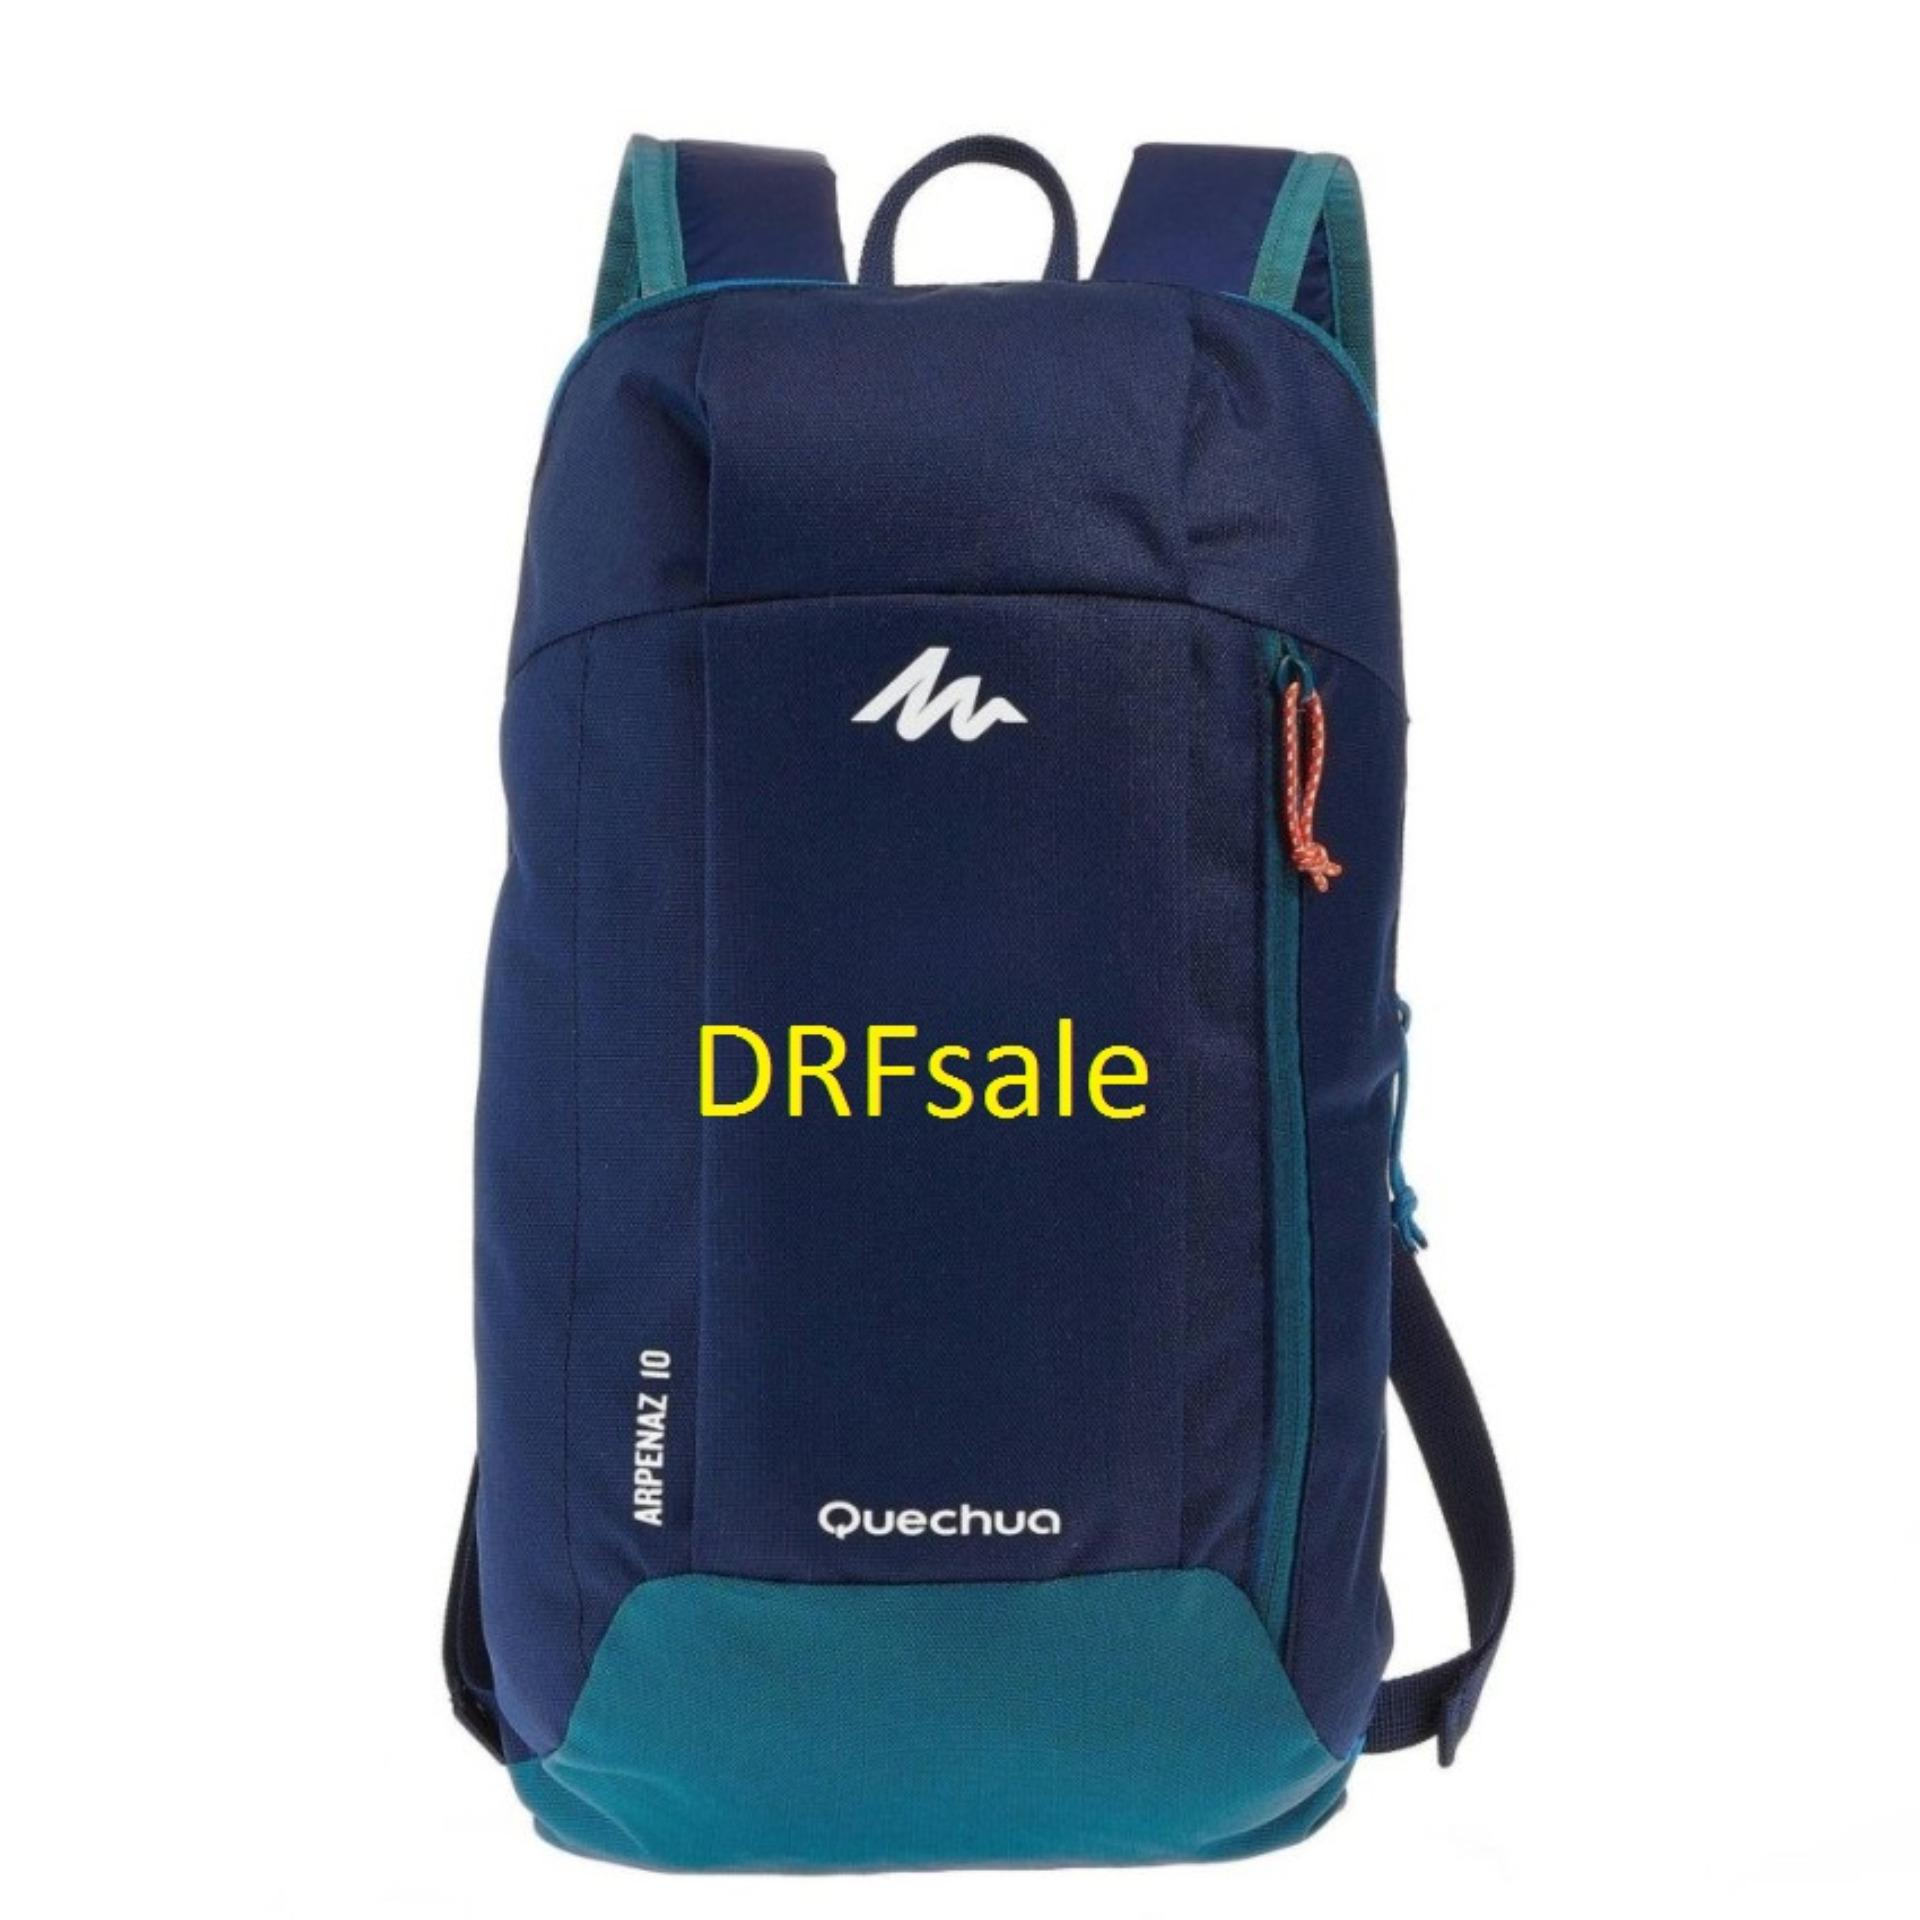 Promo Quechua Arpenaz 10 L Day Hiking Backpack Original Decathlon Terbaru